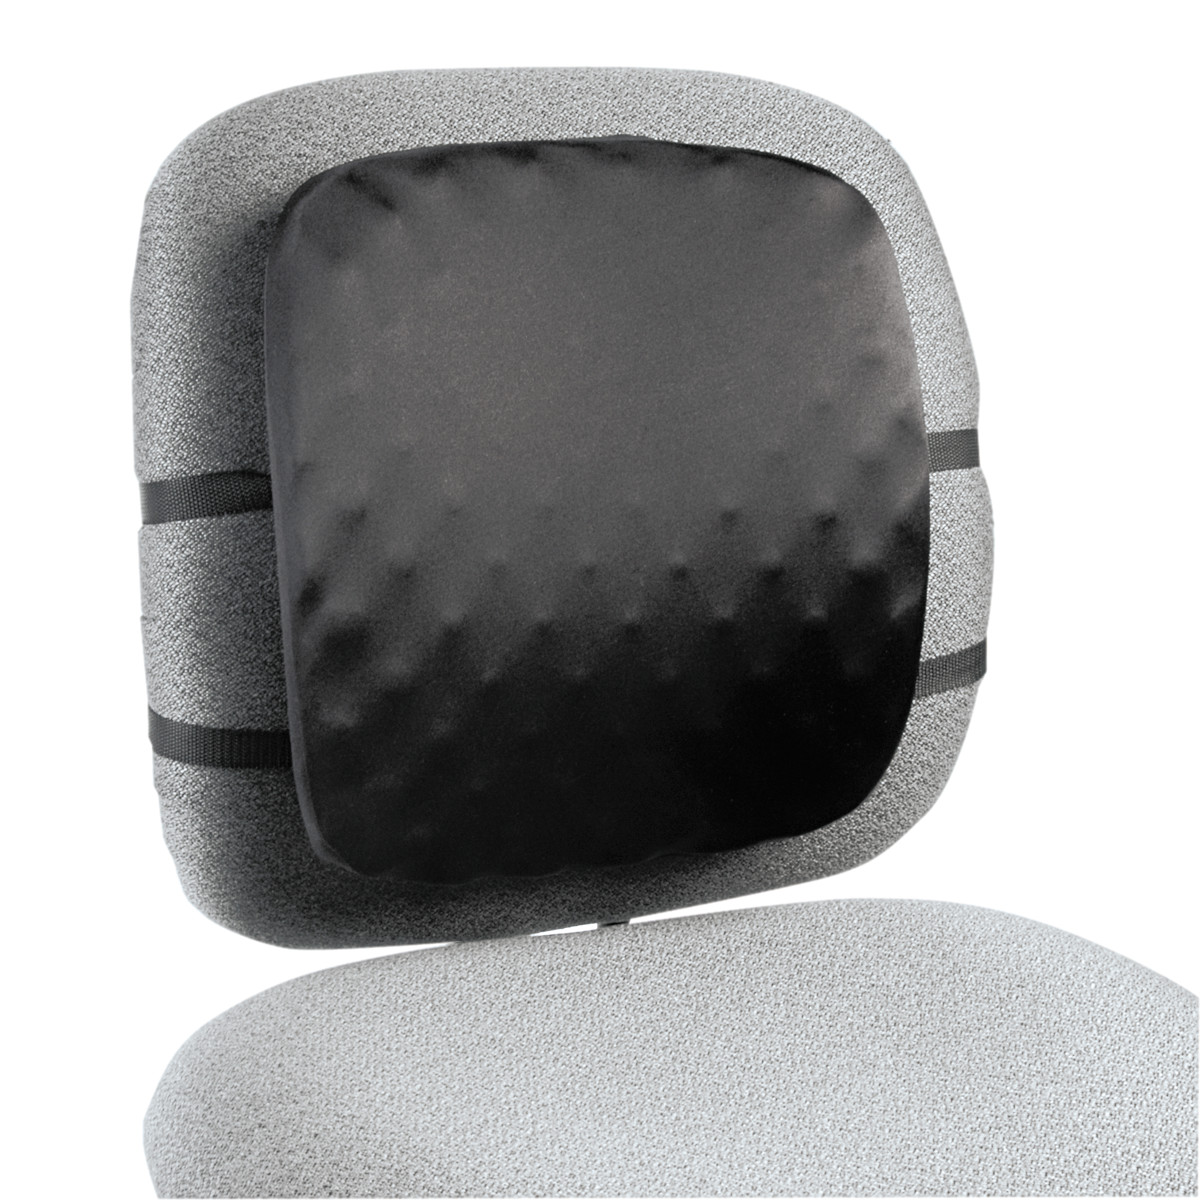 Kensington Halfback Back Support Chair Pad, 13w x 1 1 2d x 13 3 4h, Black by ACCO BRANDS, INC.